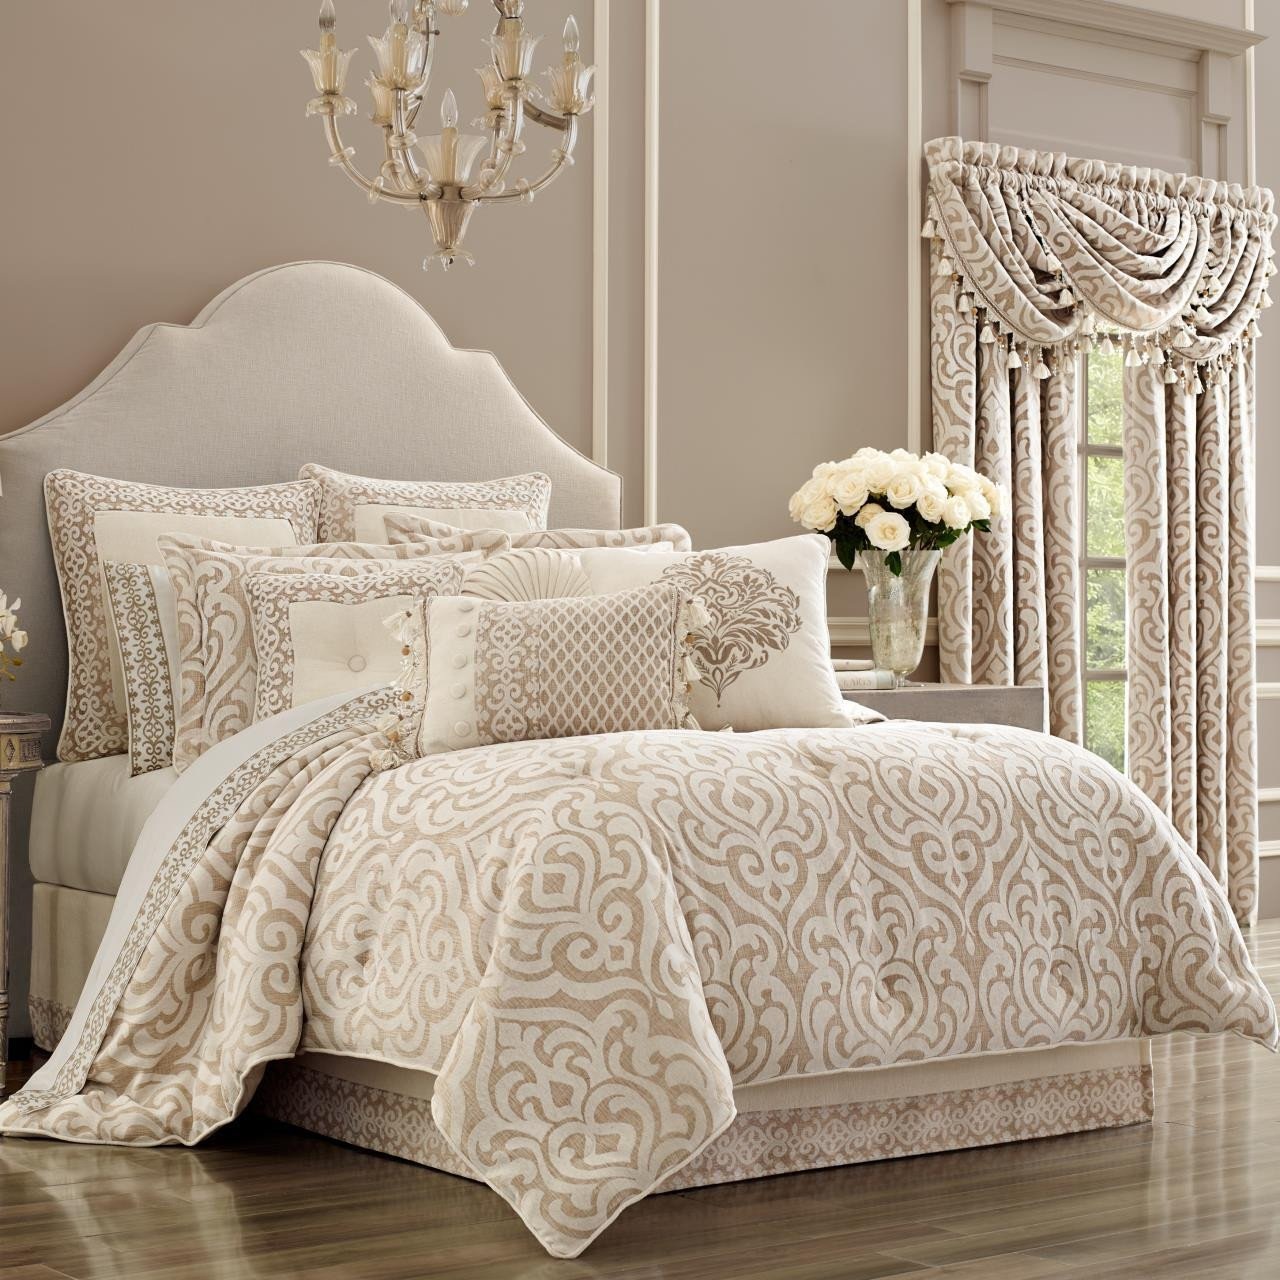 Bedroom Bedding and Curtain Set Beautiful Milano Sand forter Collection by J Queen New York